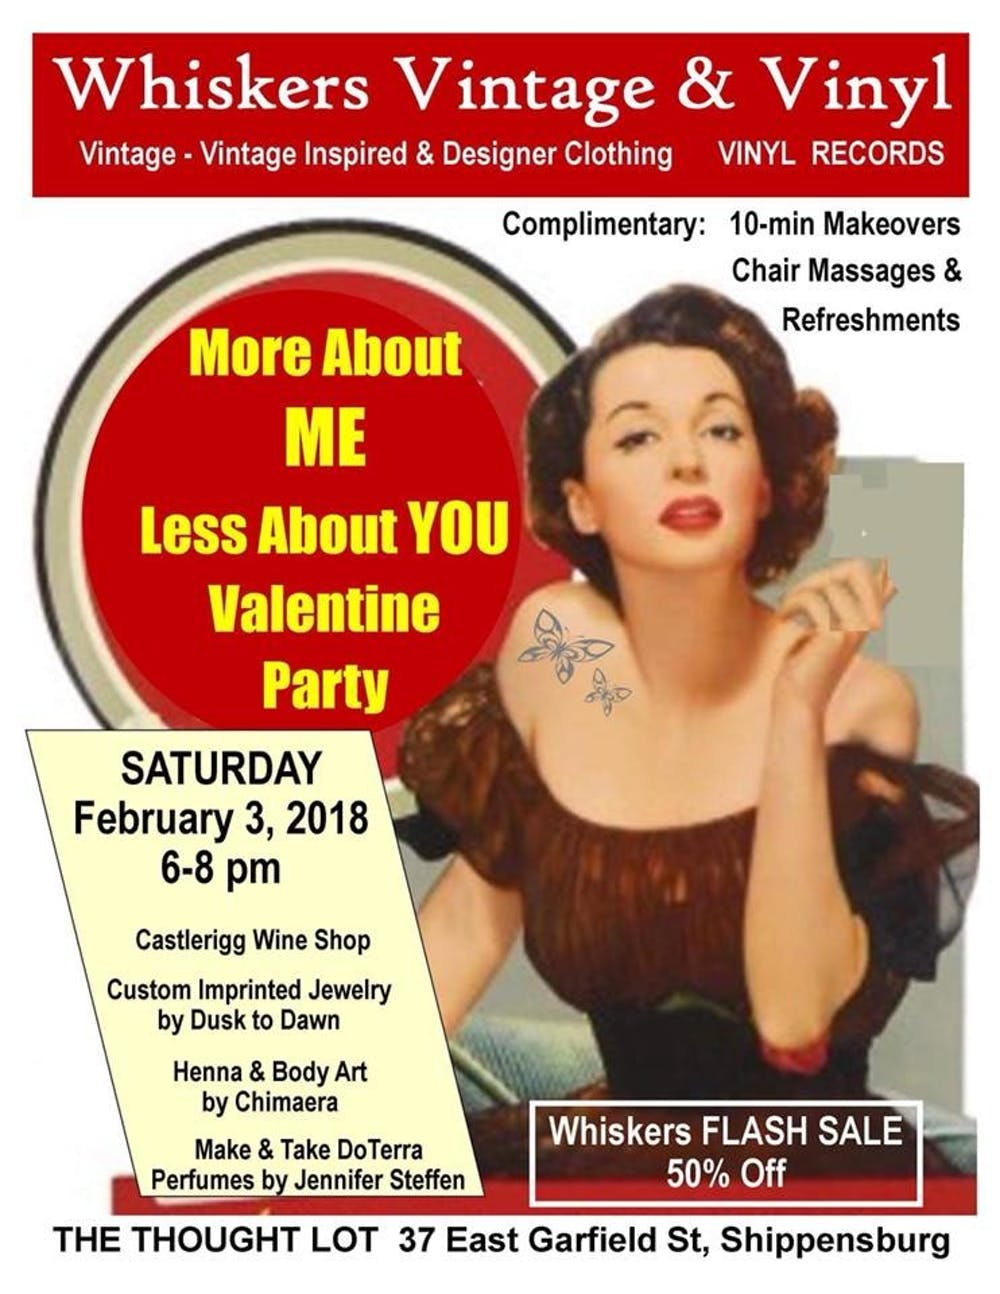 Whiskers Vintage and Vinyl to pamper locals for Valentine's Day